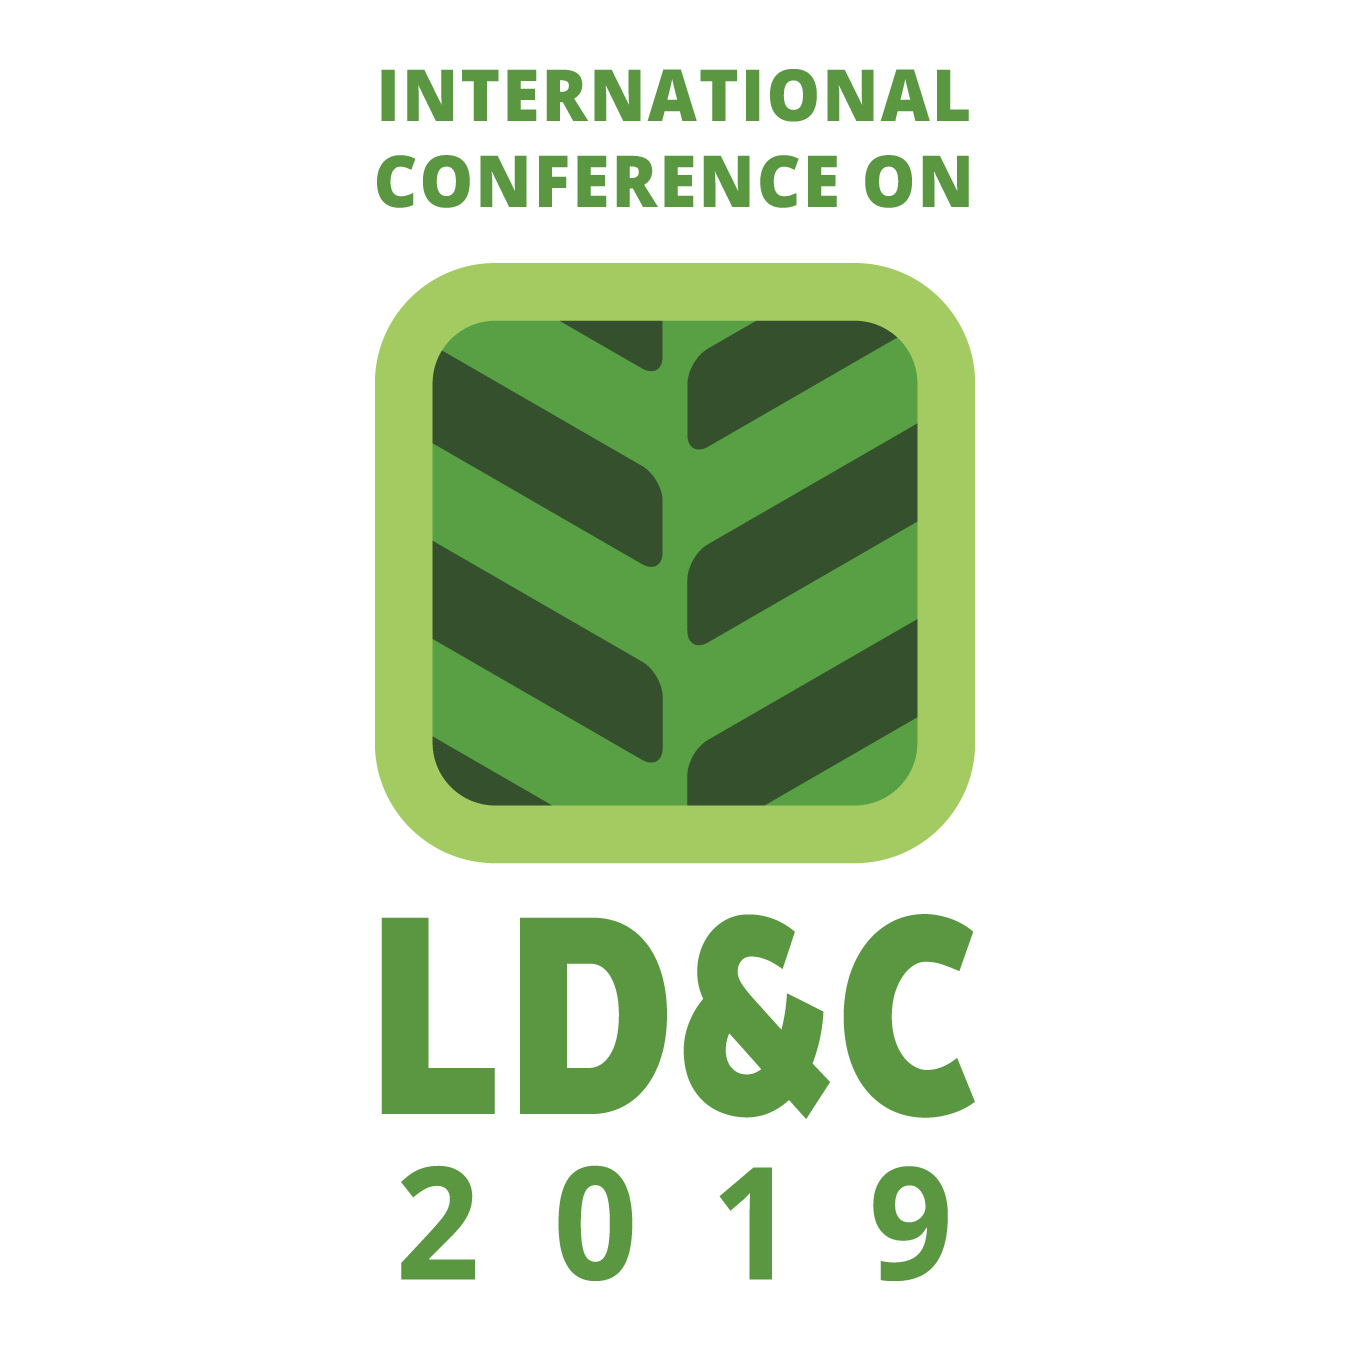 6th International Conference on Language Documentation & Conservation (2019)